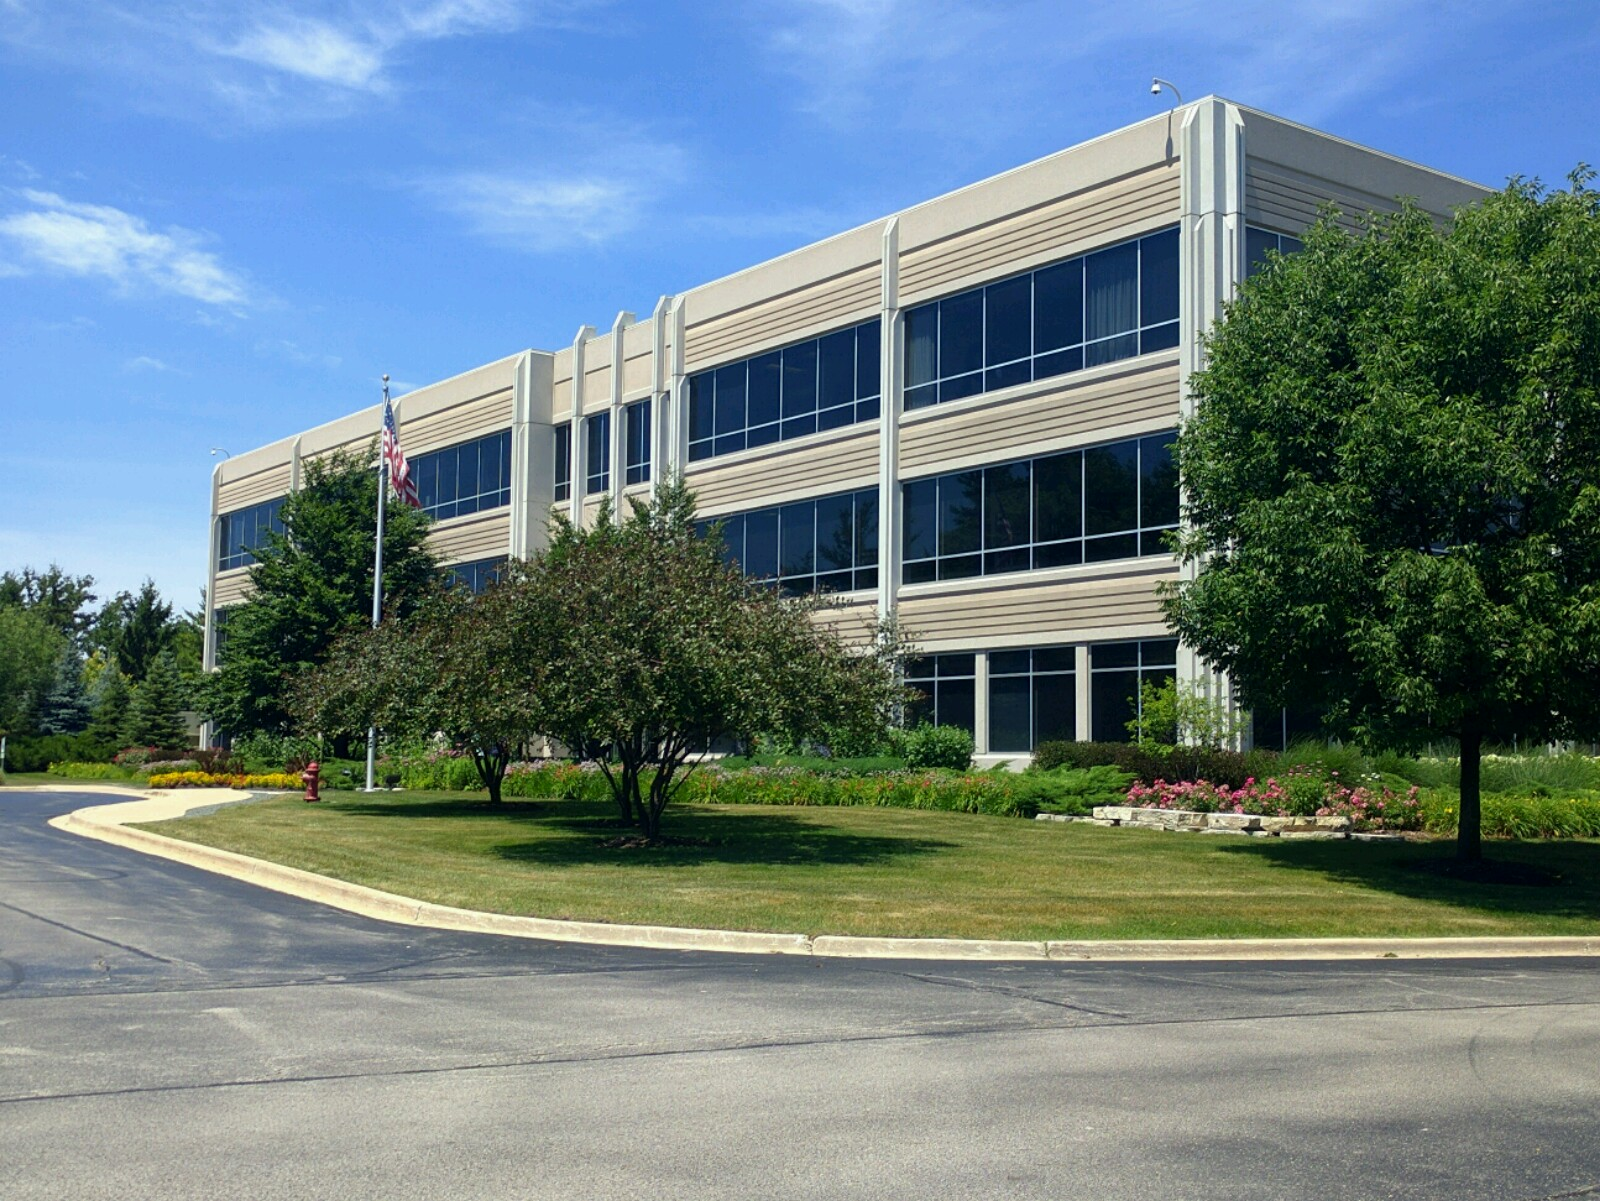 Packaging Corporation of America's corporate headquarters in Lake Forest, Illinois.